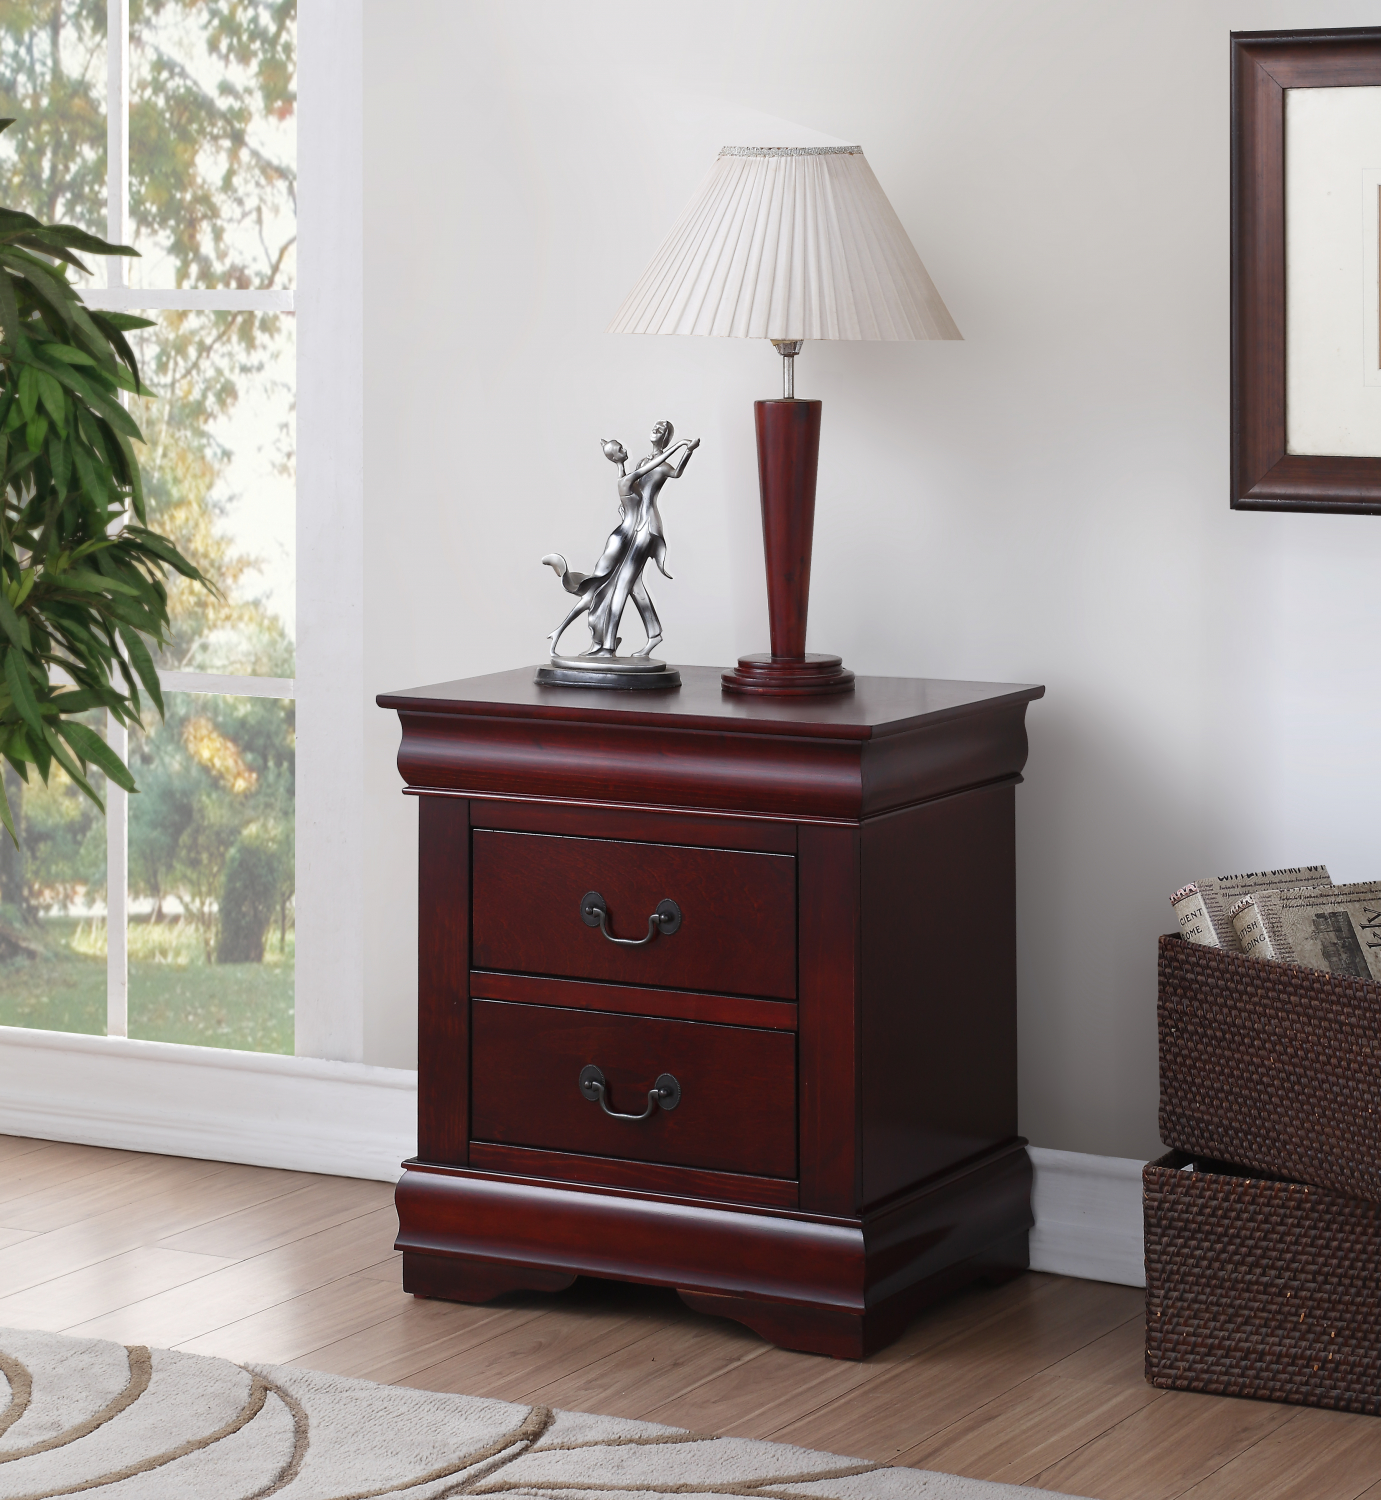 Details About Cherry Finish Nightstand Wood Bedside Table 2 Drawer End Side Storage Furniture